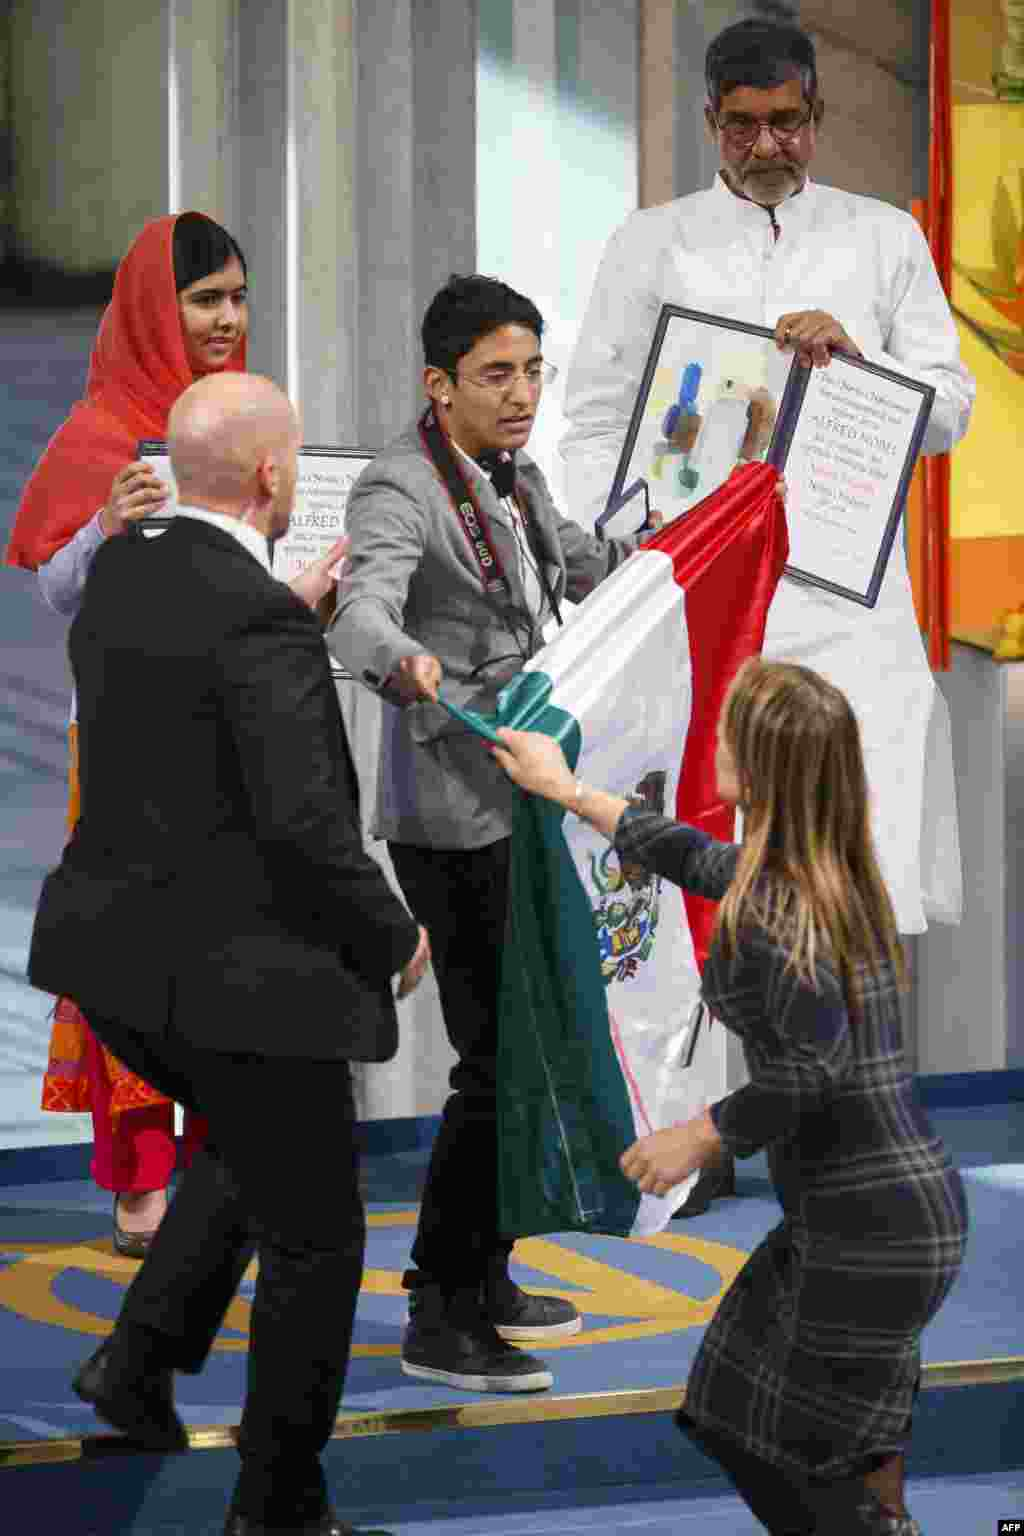 Nobel Peace Prize laureates Malala Yousafzai (left) and Kailash Satyarthi look on as security officers lead away a man displaying a flag of Mexico during the Nobel Peace Prize awards ceremony at the City Hall in Oslo, Norway.